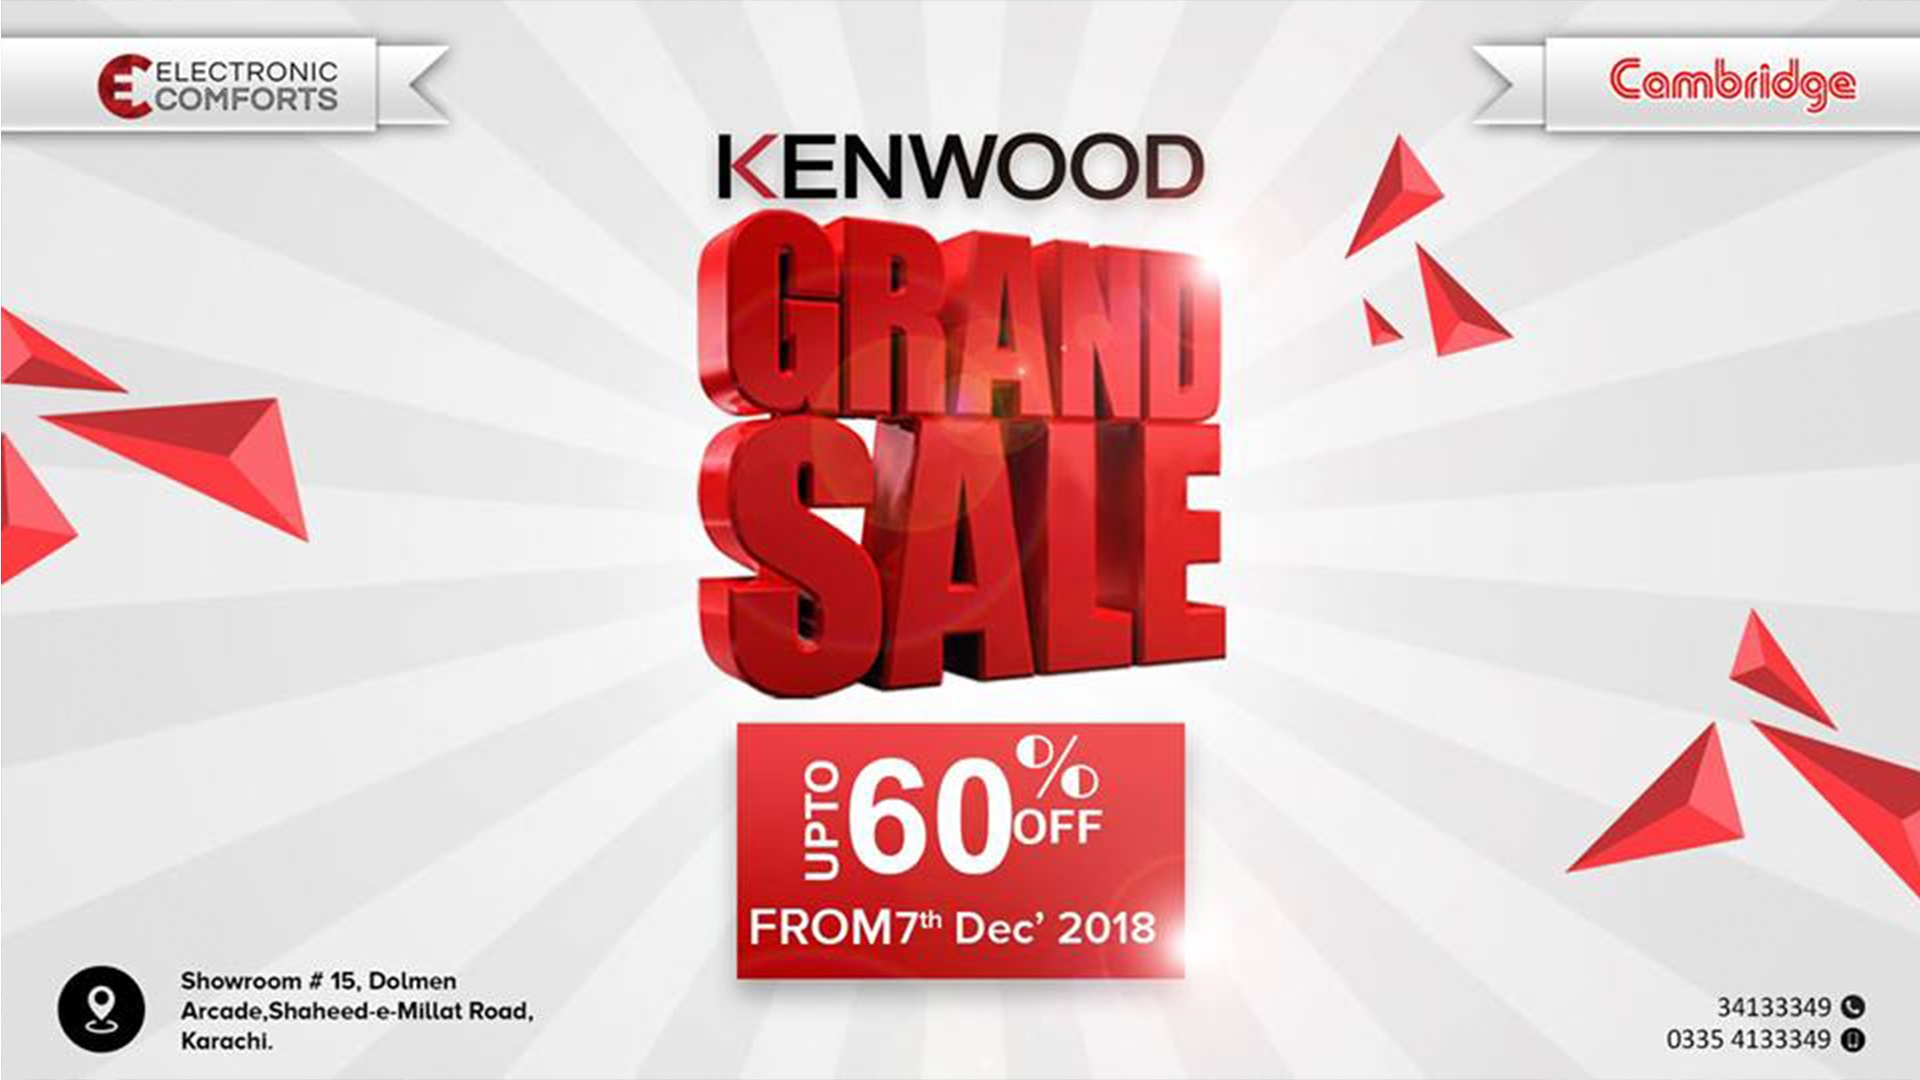 Grand Sale – upto 60% OFF on Electronics & Home Appliances